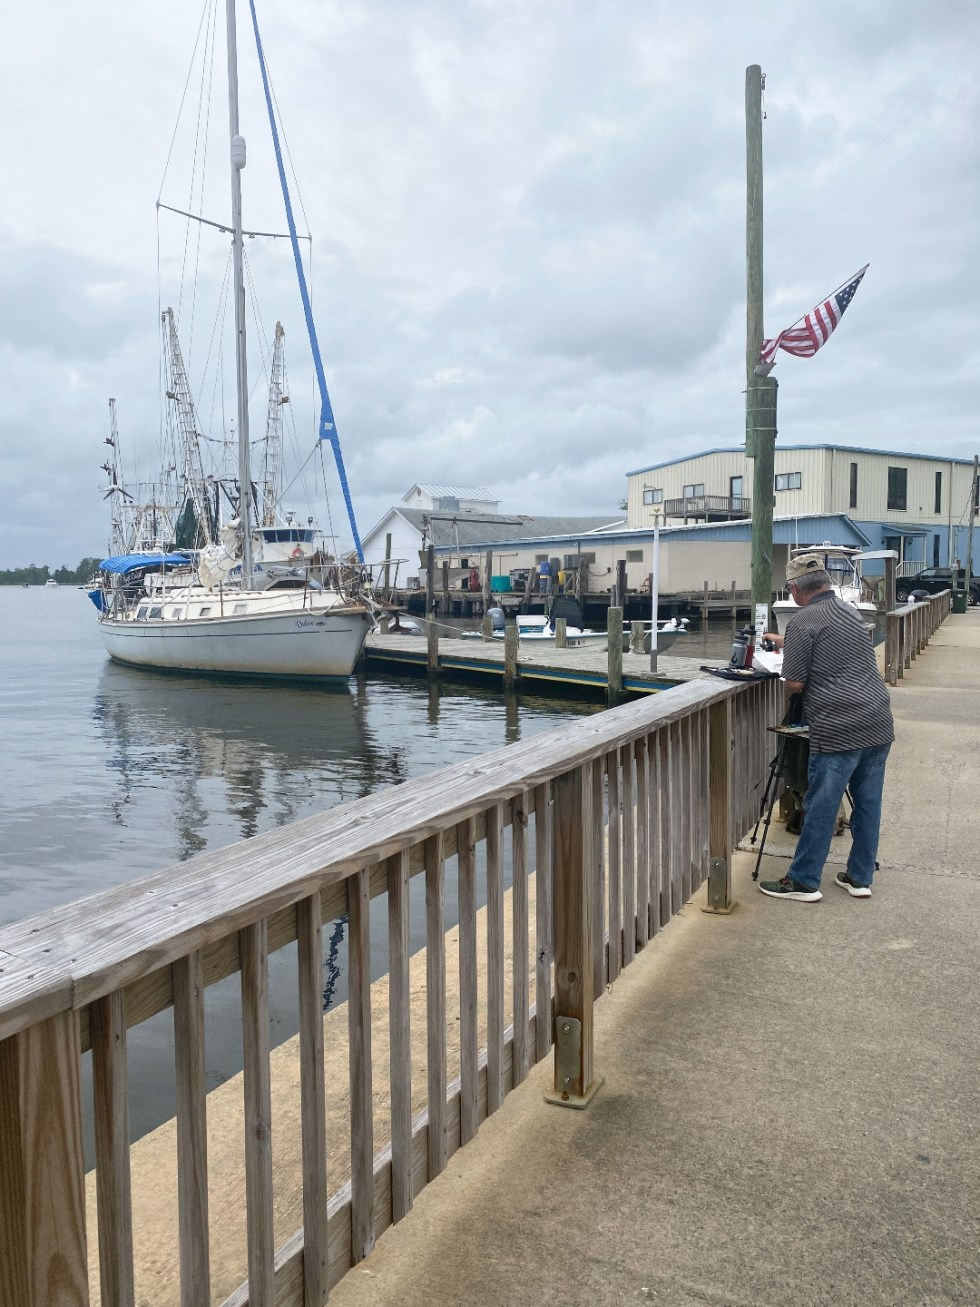 What to Do in Oriental, NC - I'm Fixin' To - @imfixintoblog | Things to do in Oriental NC by popular NC travel blog, I'm Fixin' To: image of the Oriental NC marina.